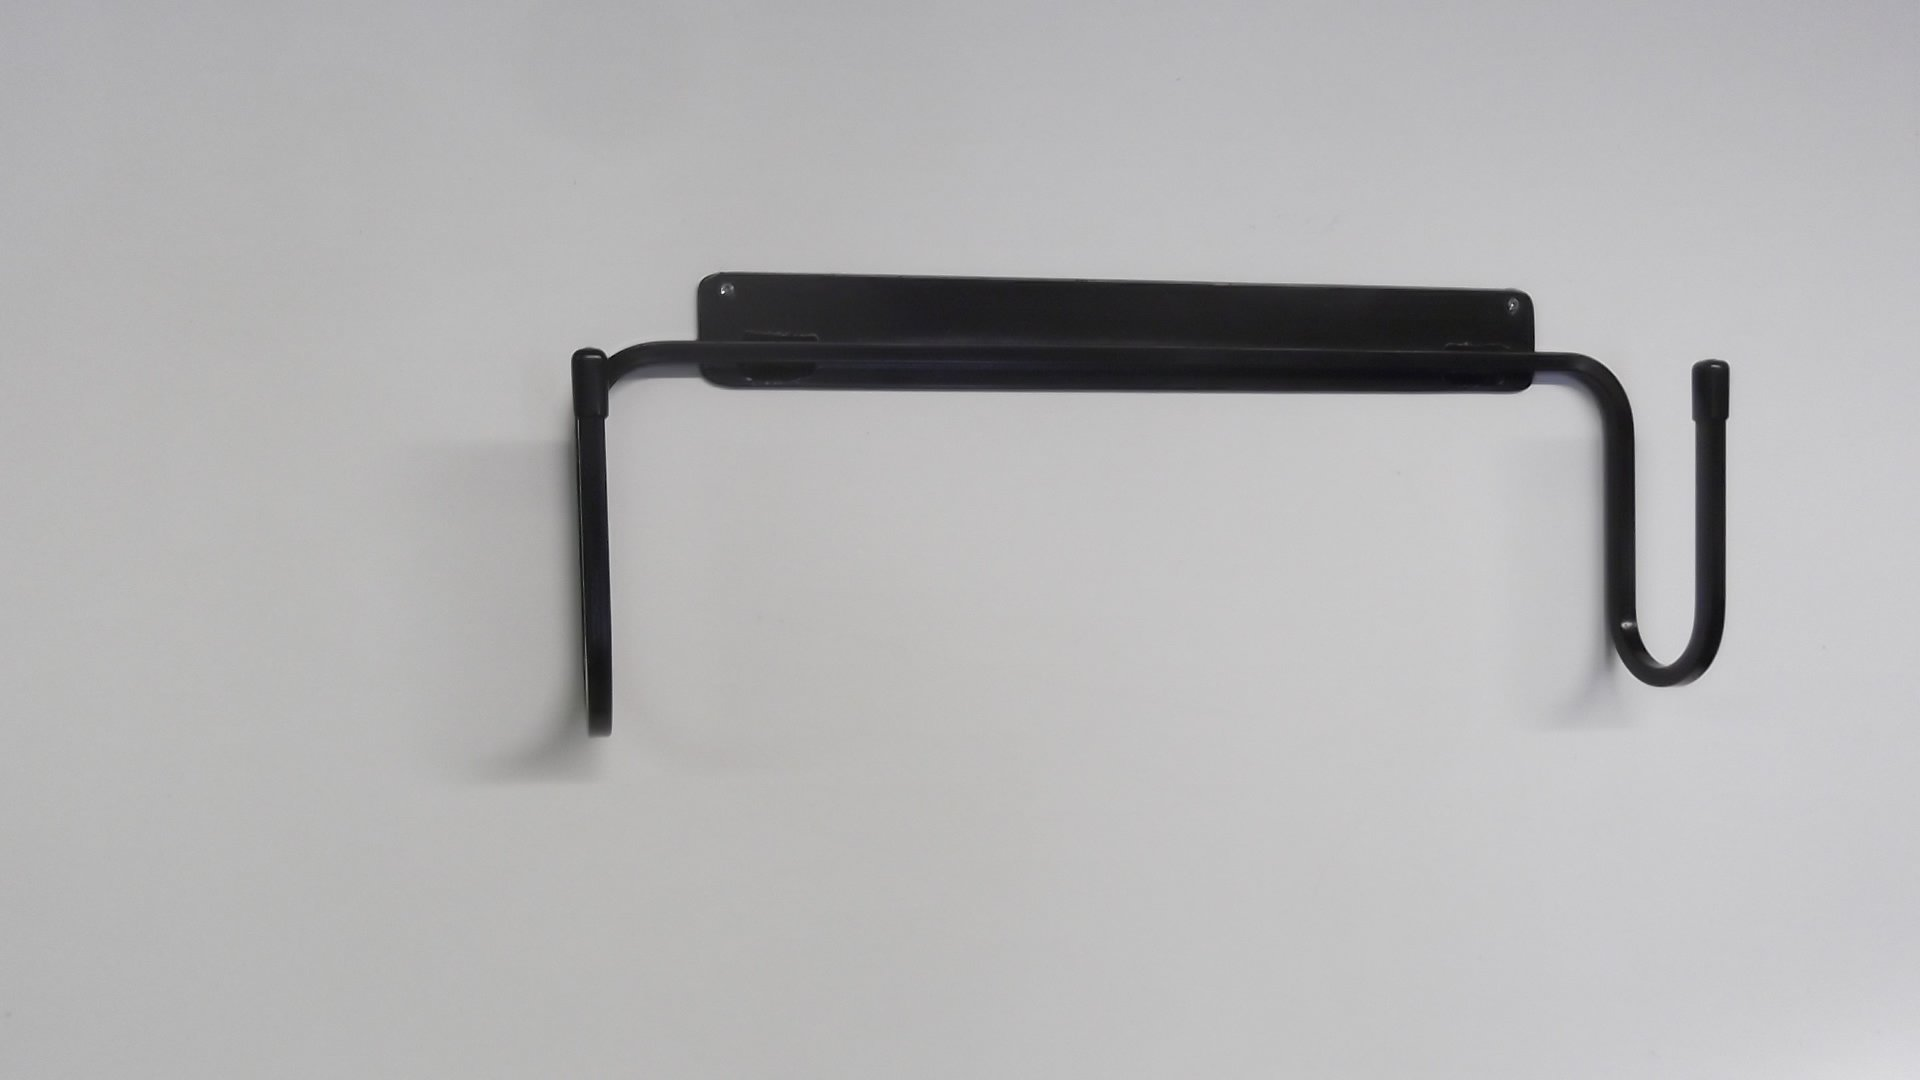 Snowboard Wall Rack Hanger Display Mount by Hang It Up